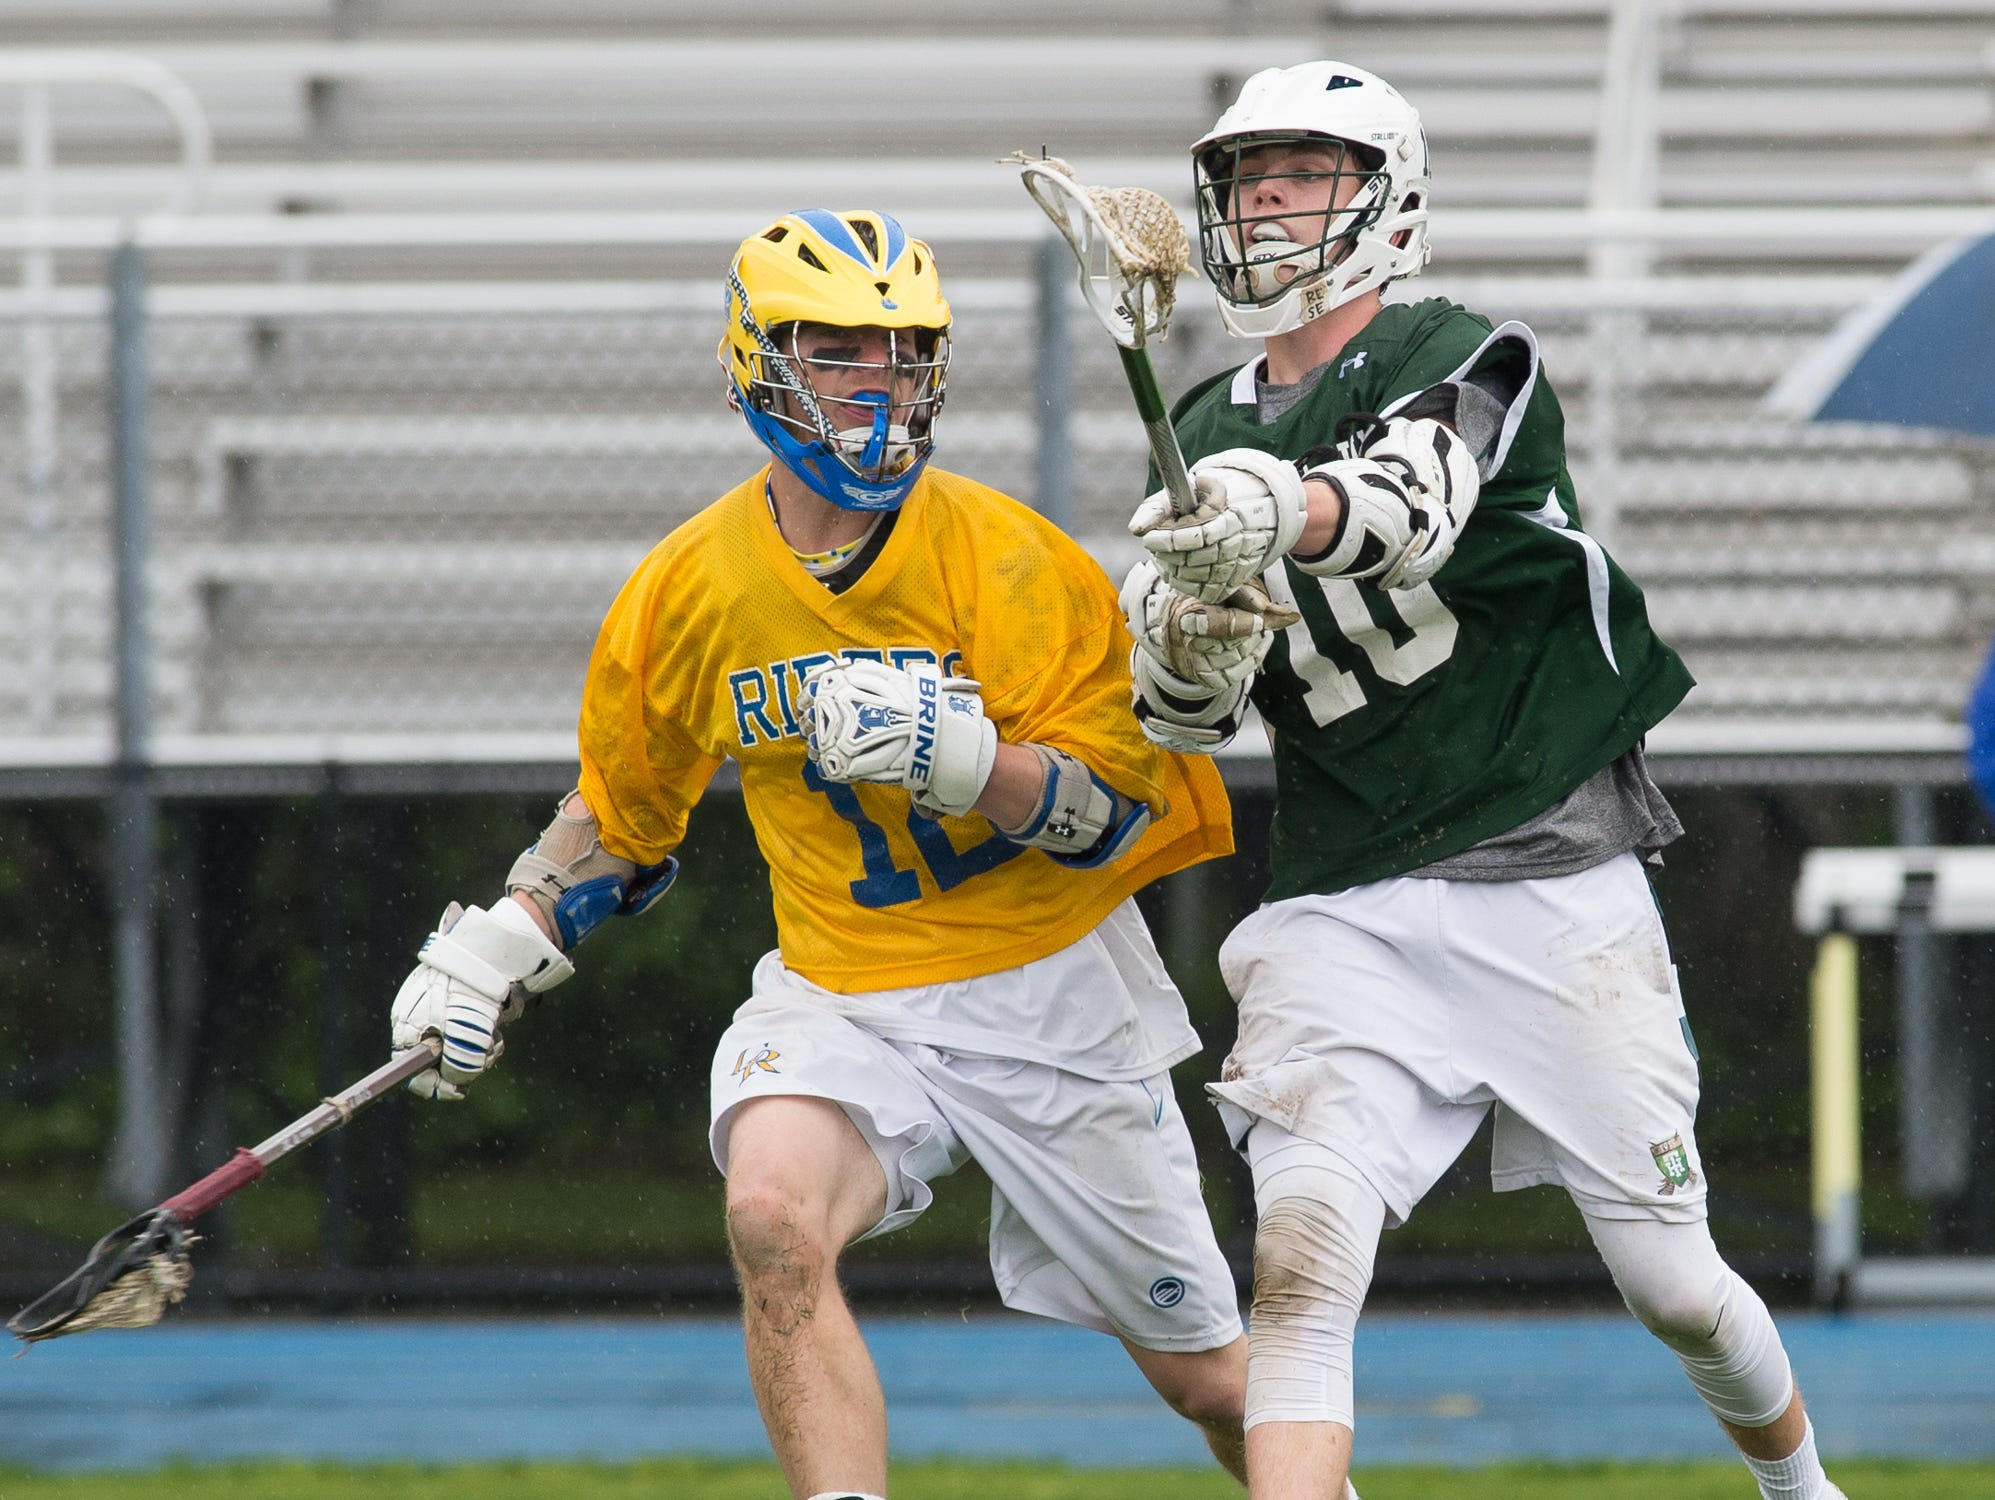 Tower Hill's James Spruance (10) right, passes the ball off as Caesar Rodney's Brinen Lefevre (12) defends.